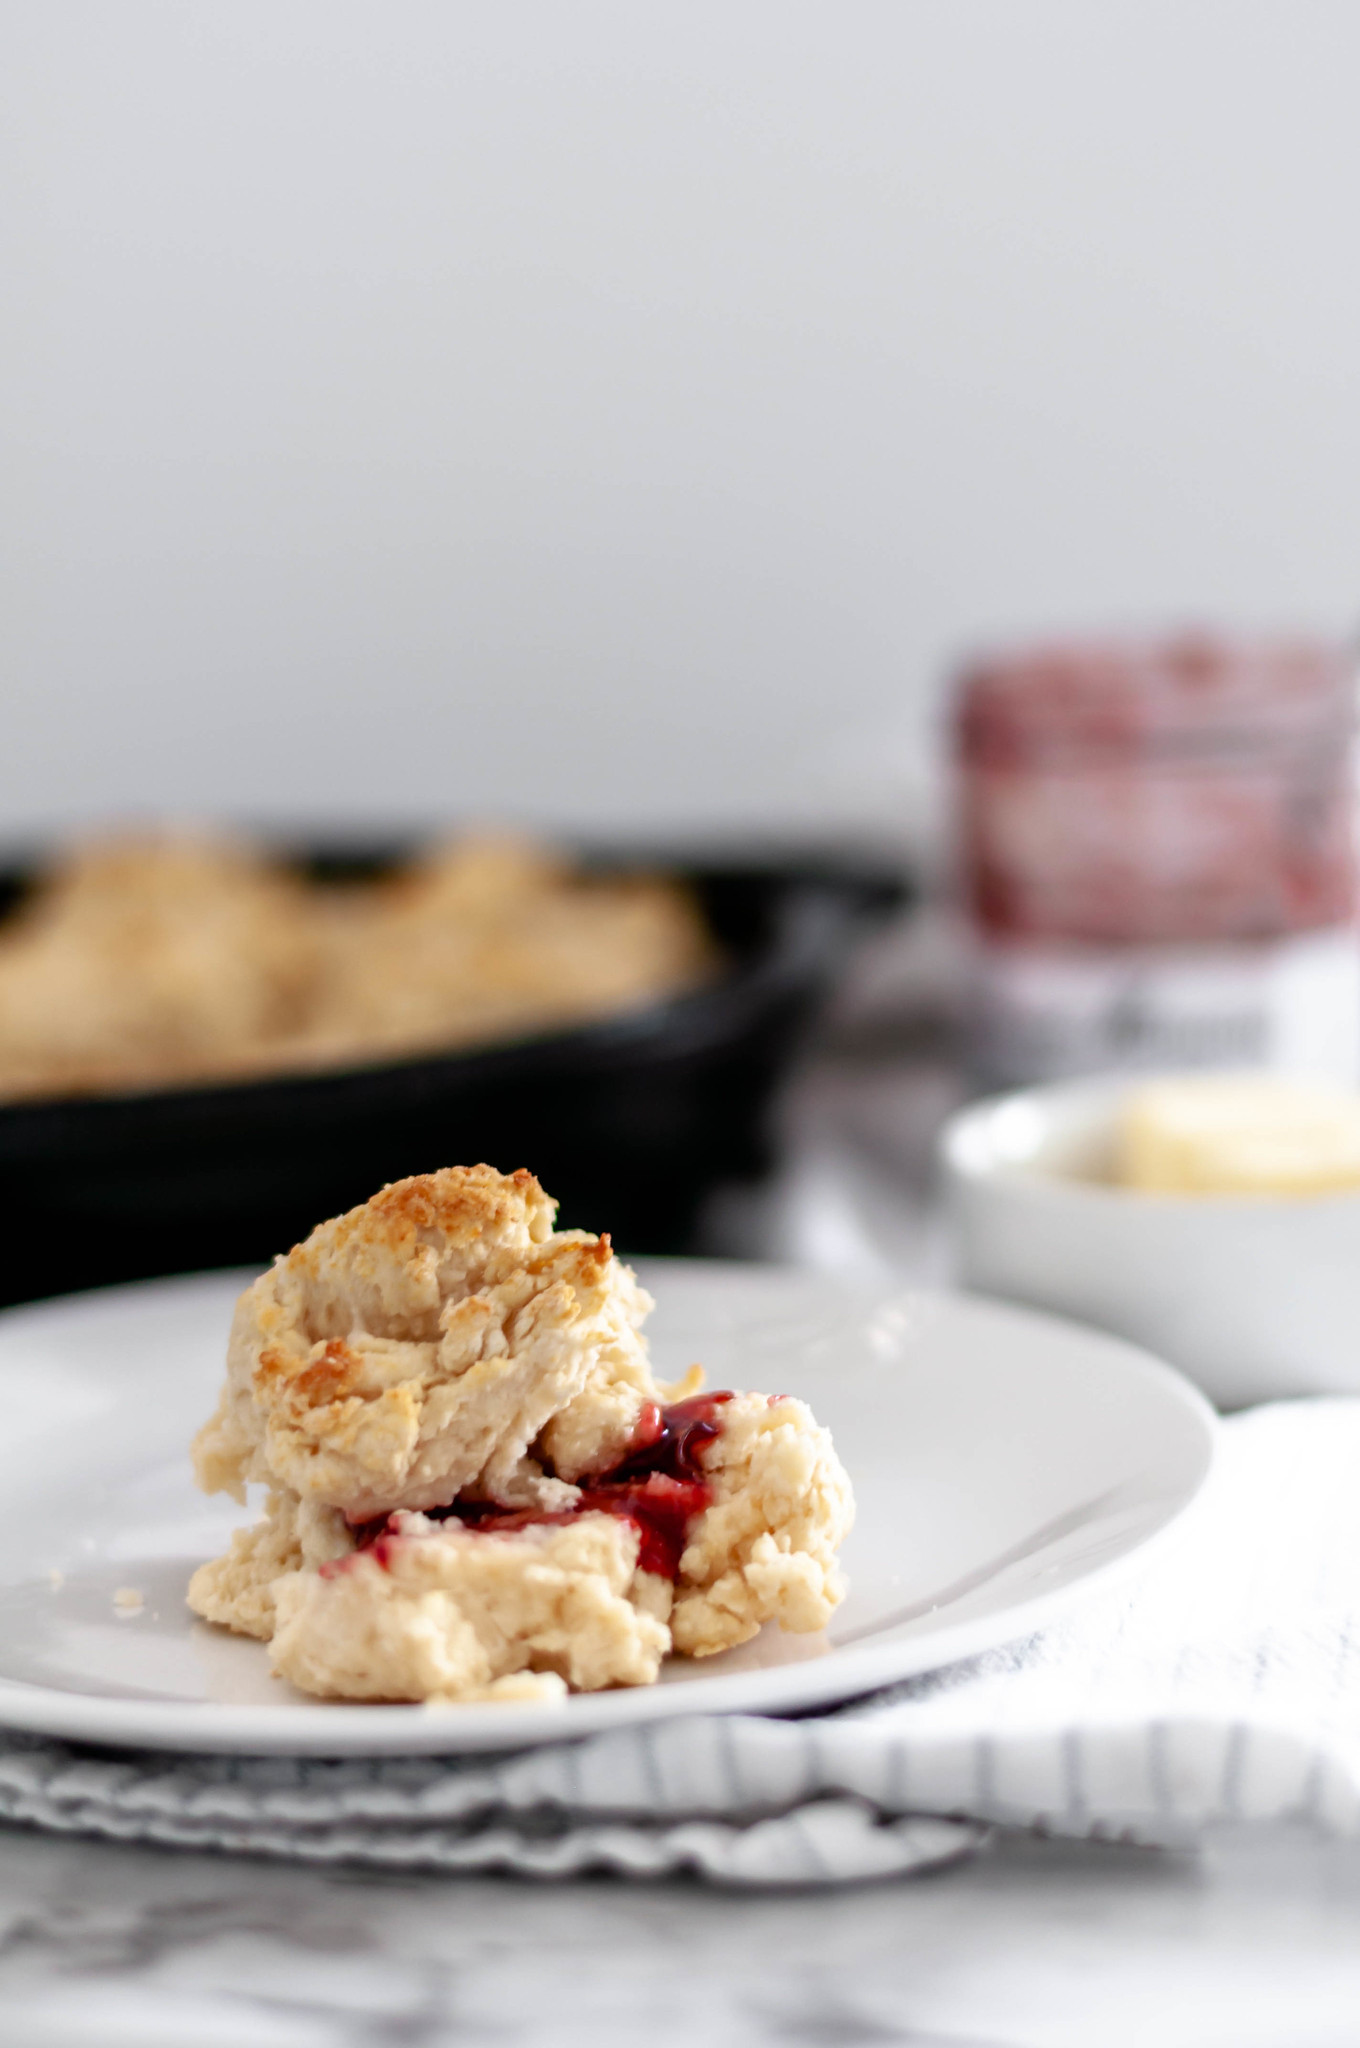 Skillet Drop Biscuits are so simple to make and can be made and baked in less than 30 minutes making them perfect for weeknight meals.